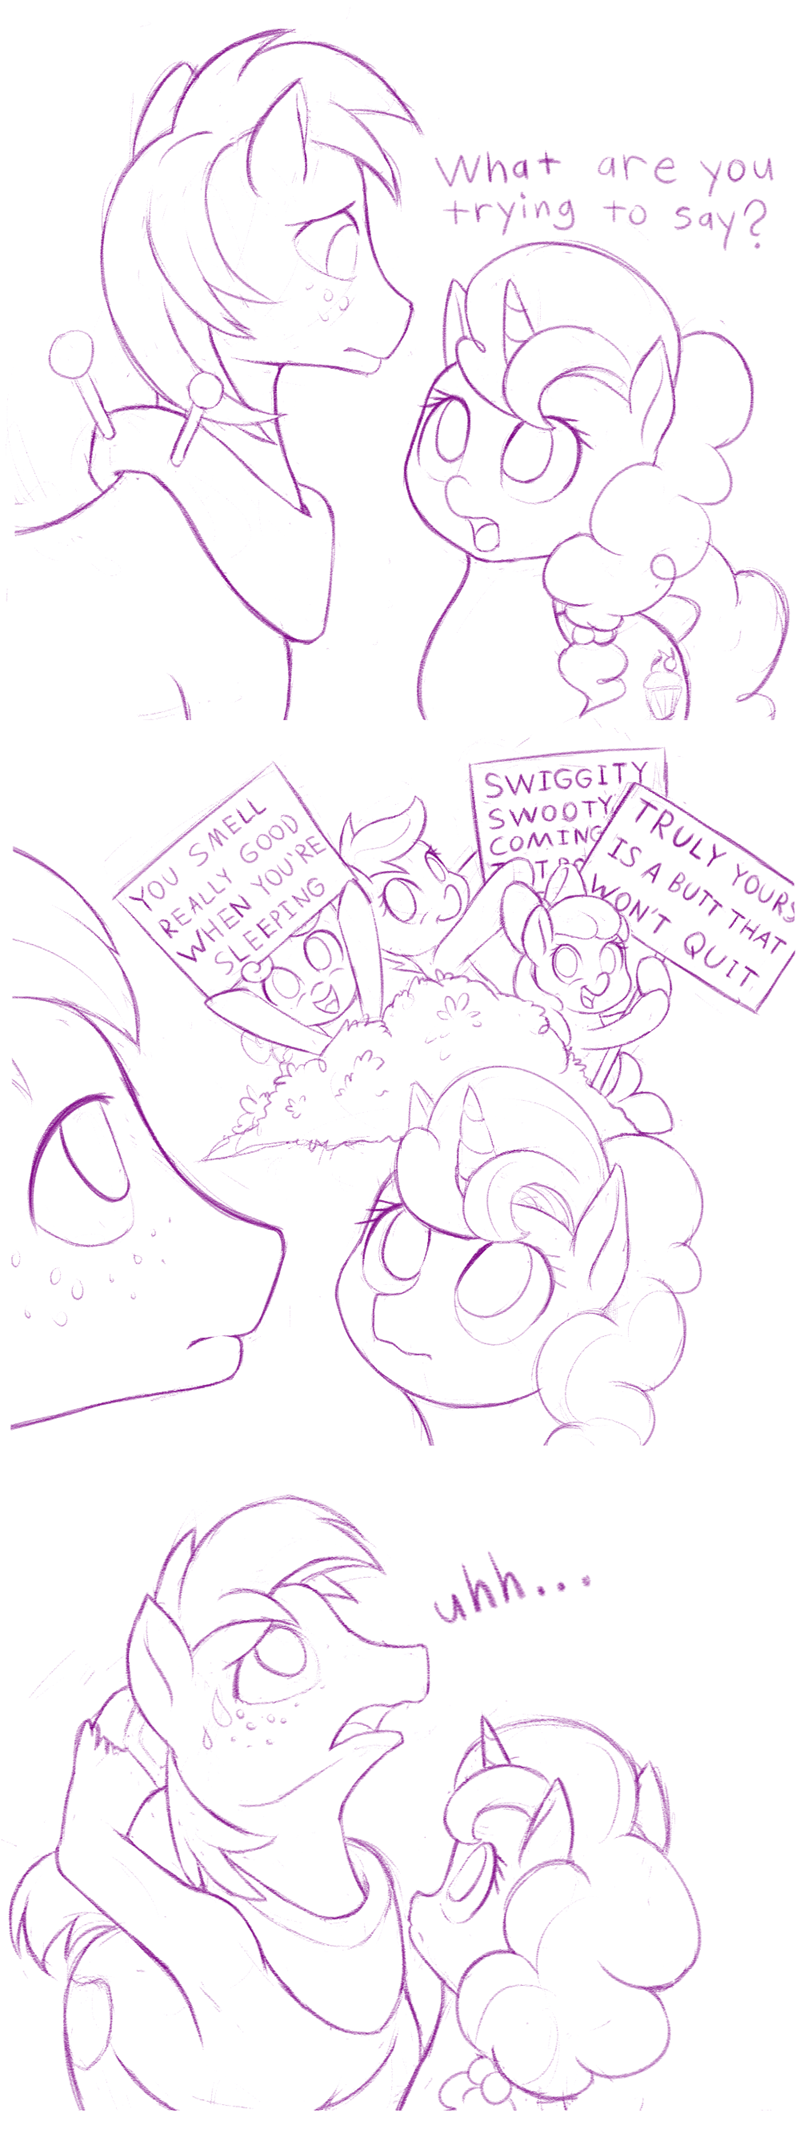 dstears sugar belle Sweetie Belle apple bloom hard to say anything Big Macintosh Scootaloo - 9058387456